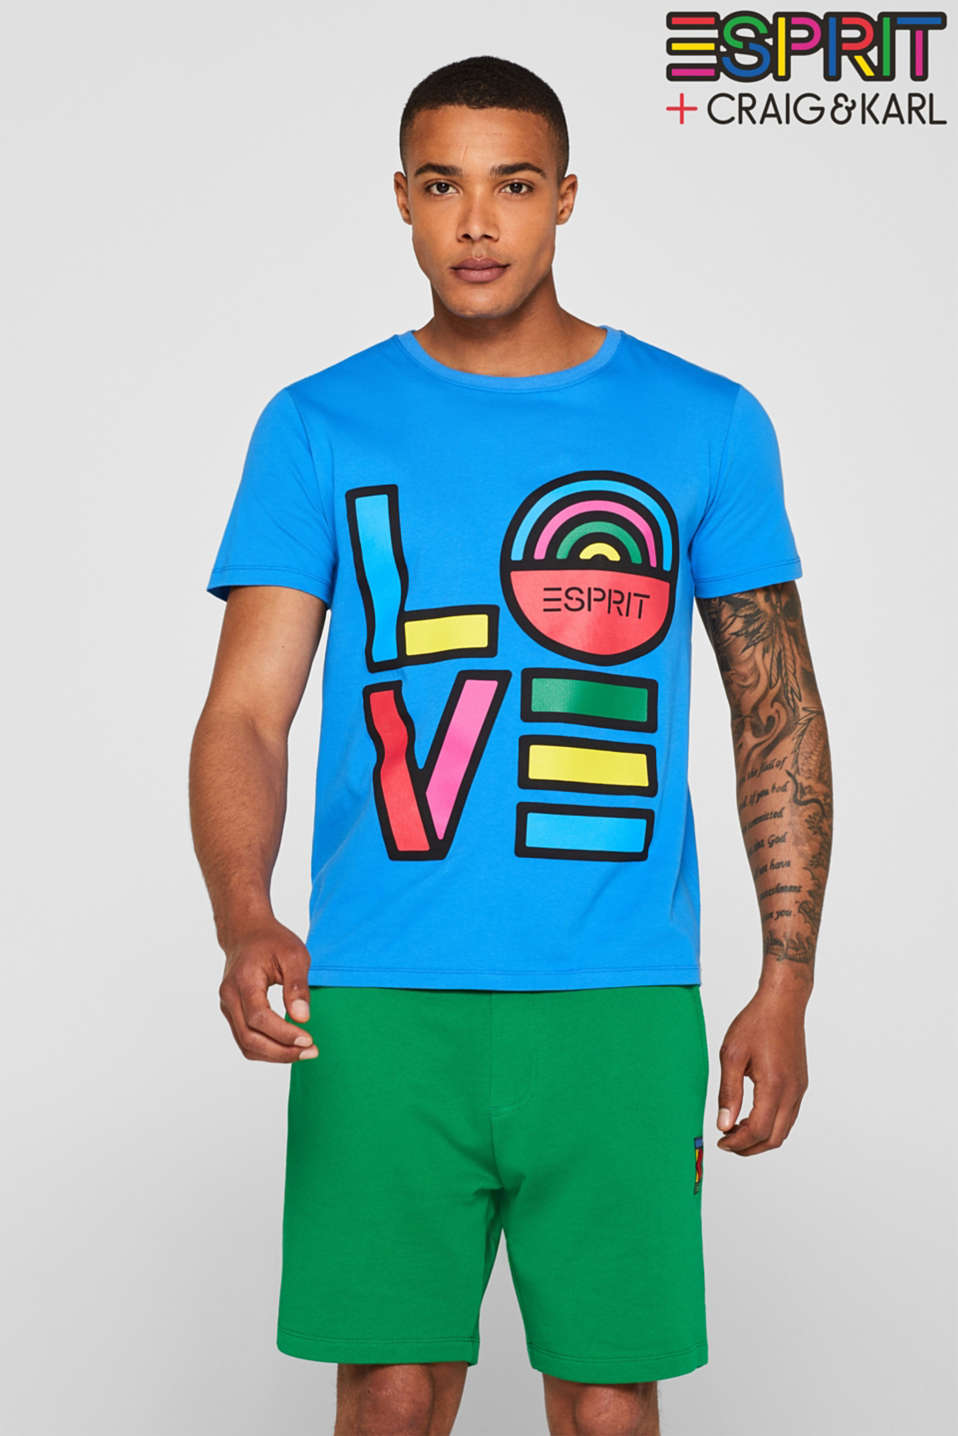 Esprit - CRAIG & KARL: love T-shirt, 100% organic cotton